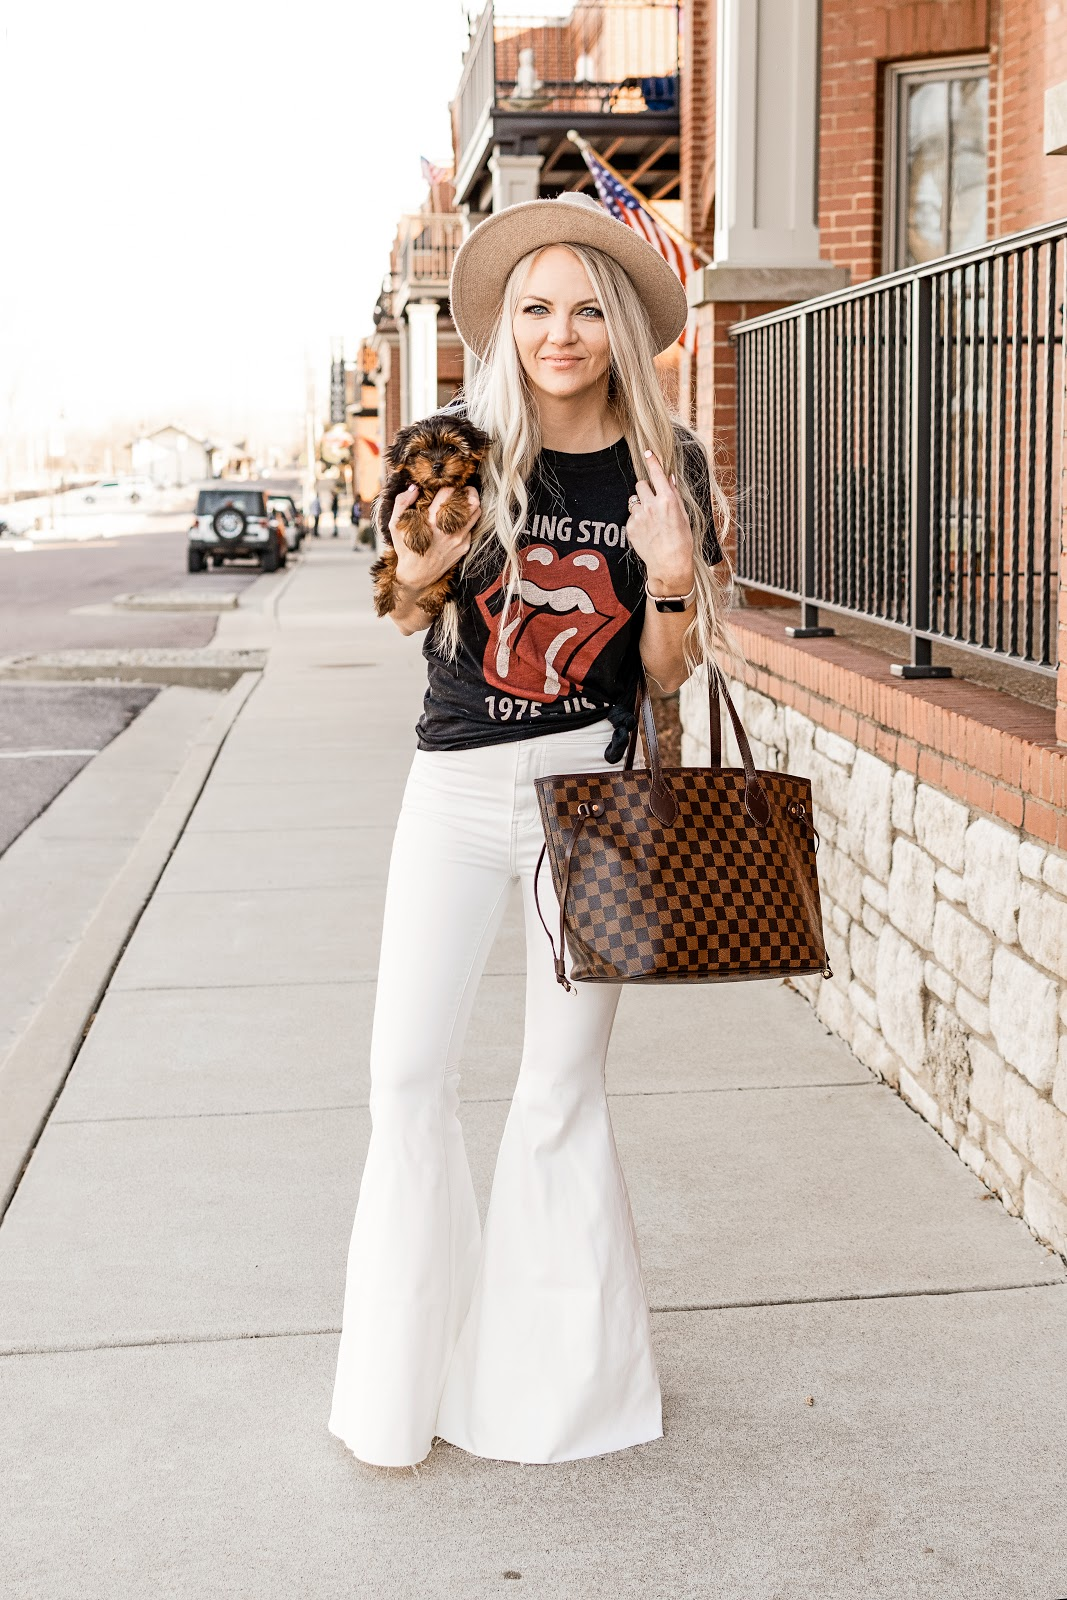 How to Style a Band Tee -  9 fun ways to style a band or graphic tee this spring/summer 2020 bell bottoms flare jeans super flare jeans free people neverfull dupe bag yorkie puppy fedora felt hat camo skirt leopard skirt sneakers platform sneakers white woven mules slides loafers white denim acid wash skirt white jeans mom jeans girlfriend jeans GG belt dupe gucci belt abercrombie jeans bodycon fitted dress